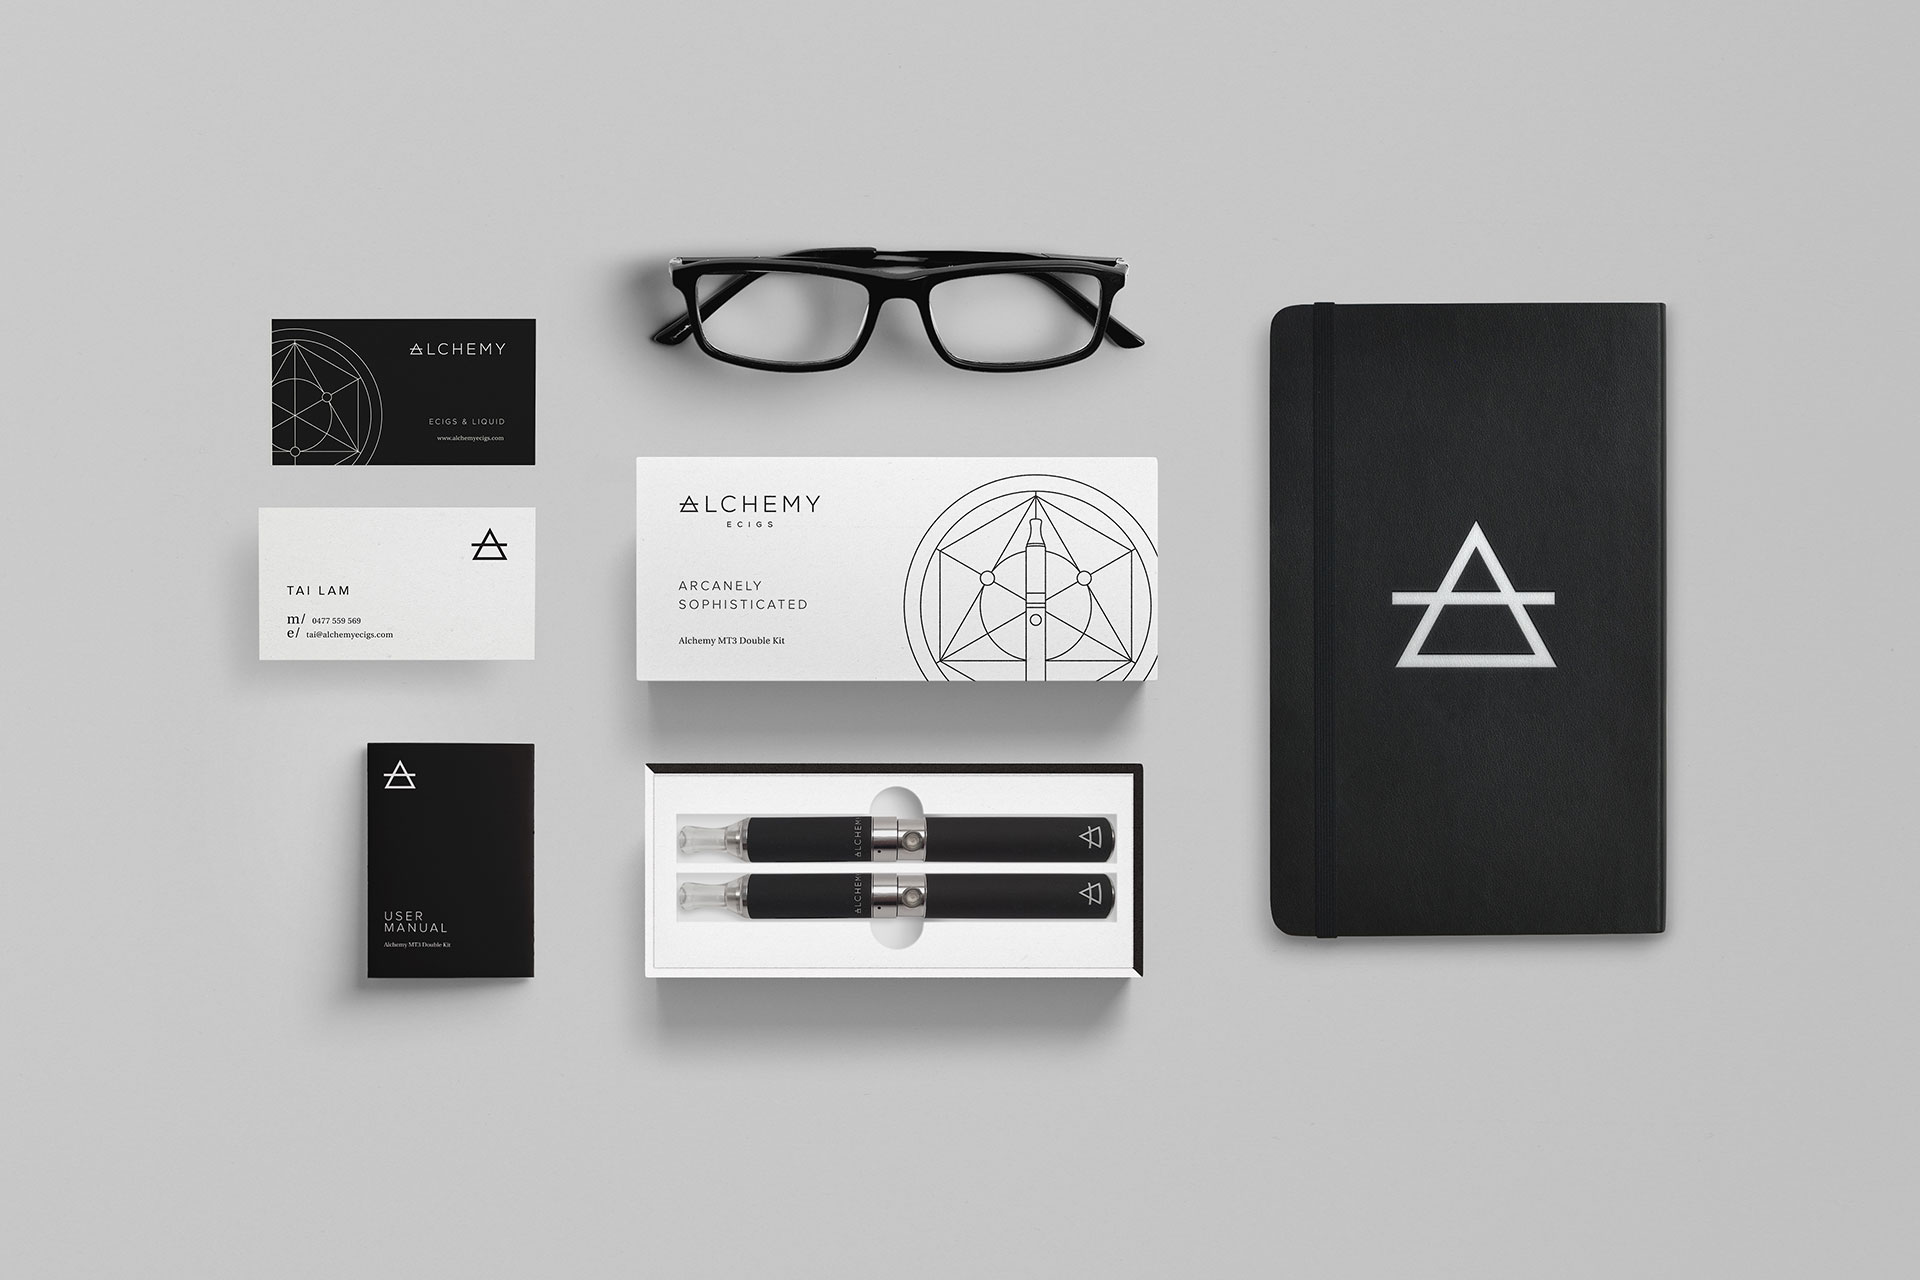 Alchemy-Ecigs-Stationary-Design